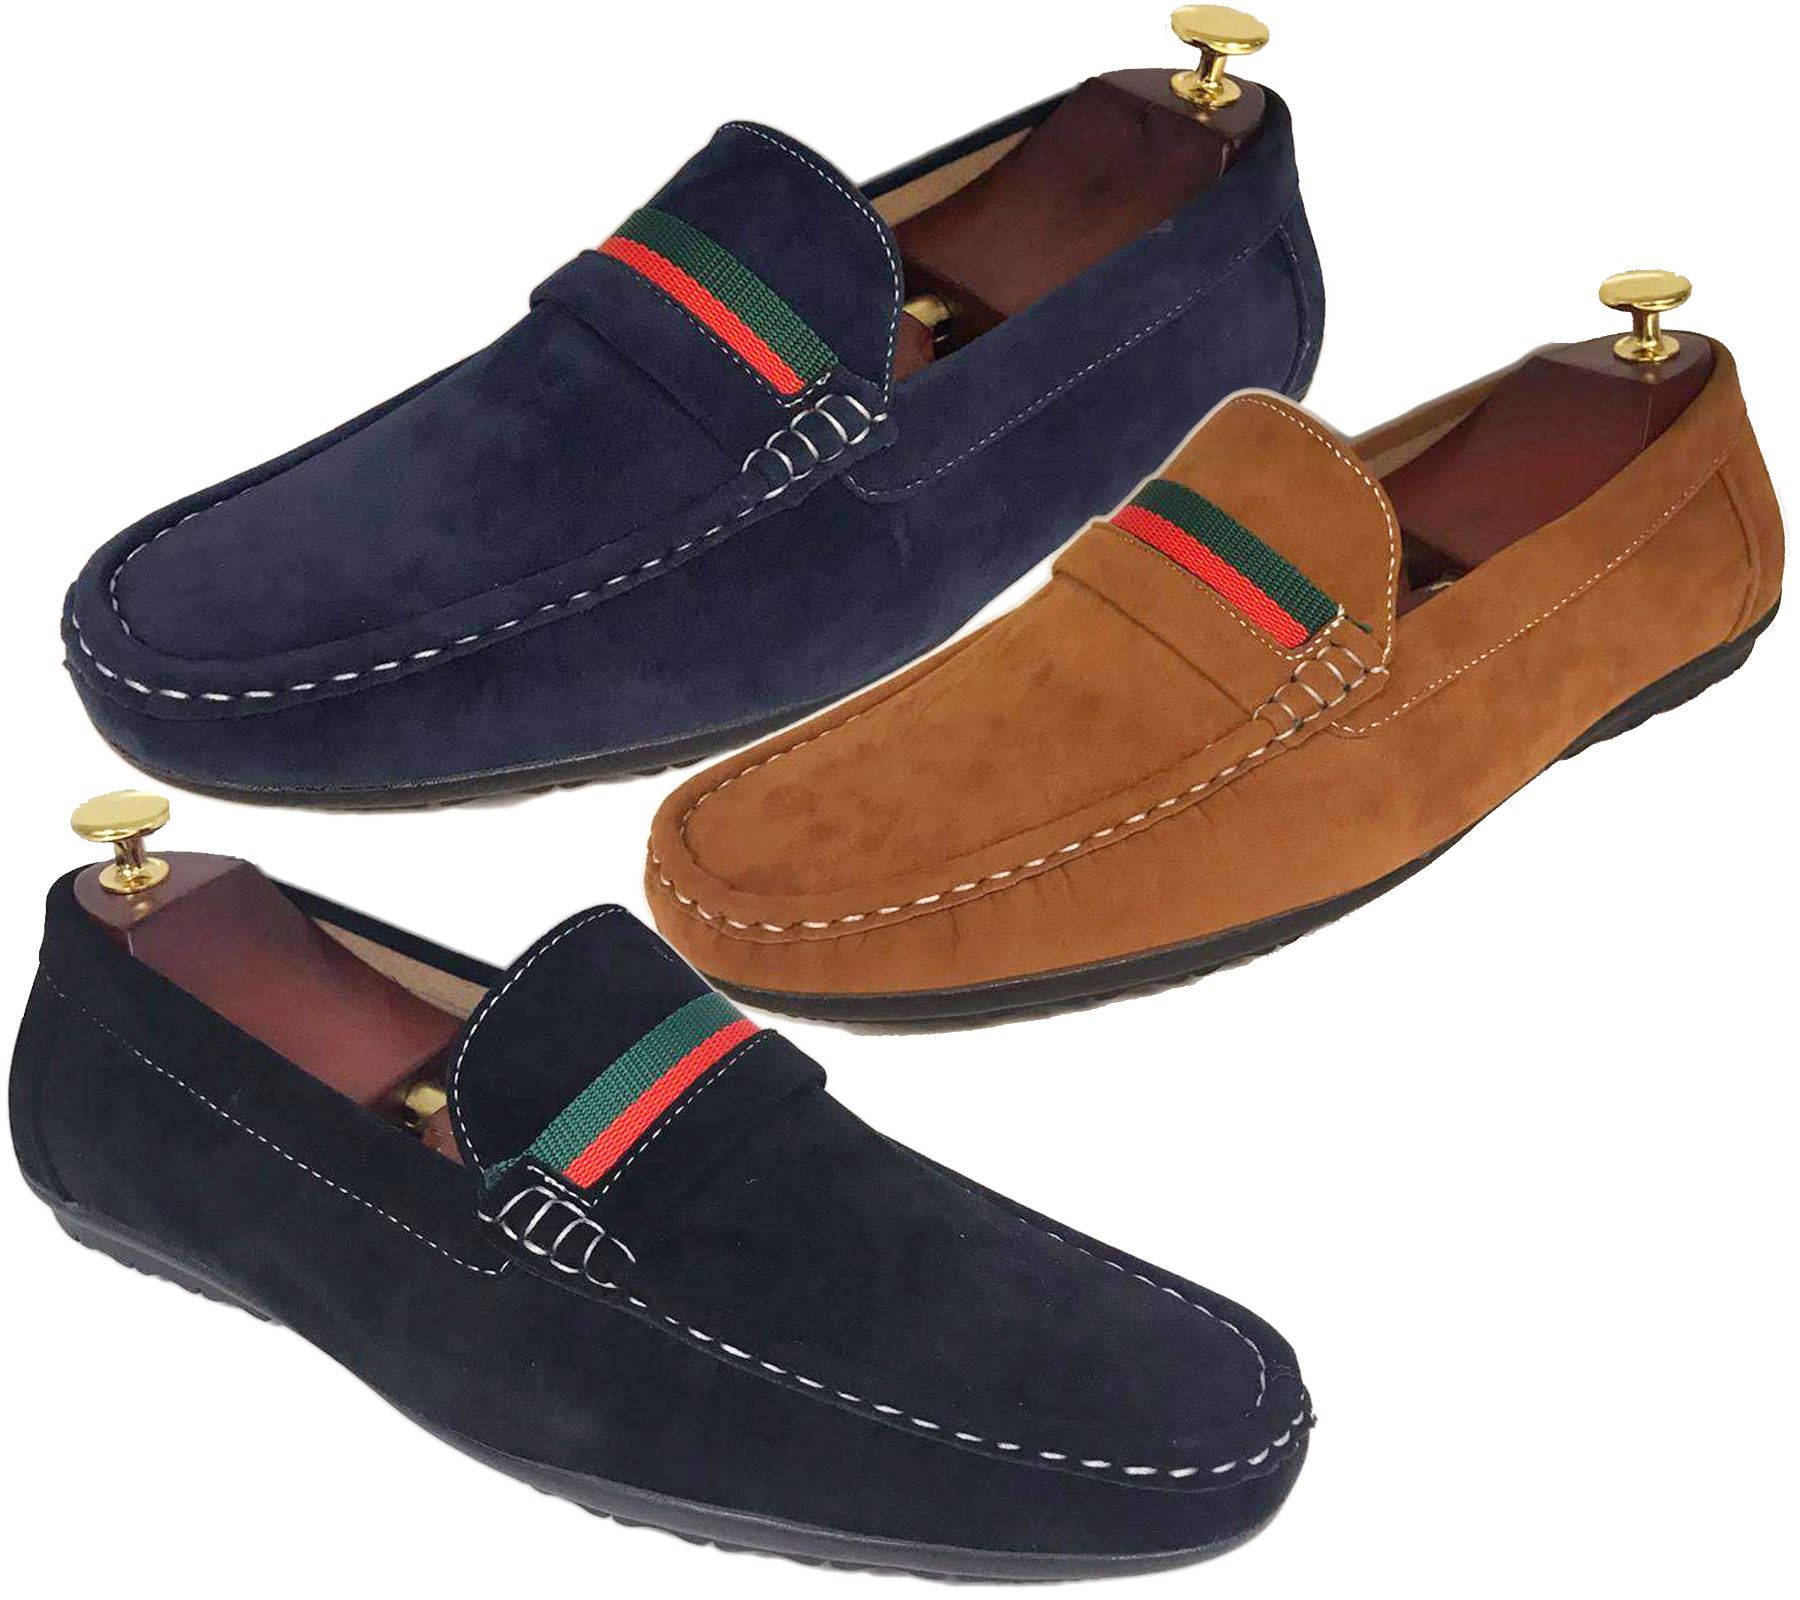 Mens Loafers Mocassin Boat Deck Shoes Flat Slip On Driving Casual Smart  Pumps | eBay